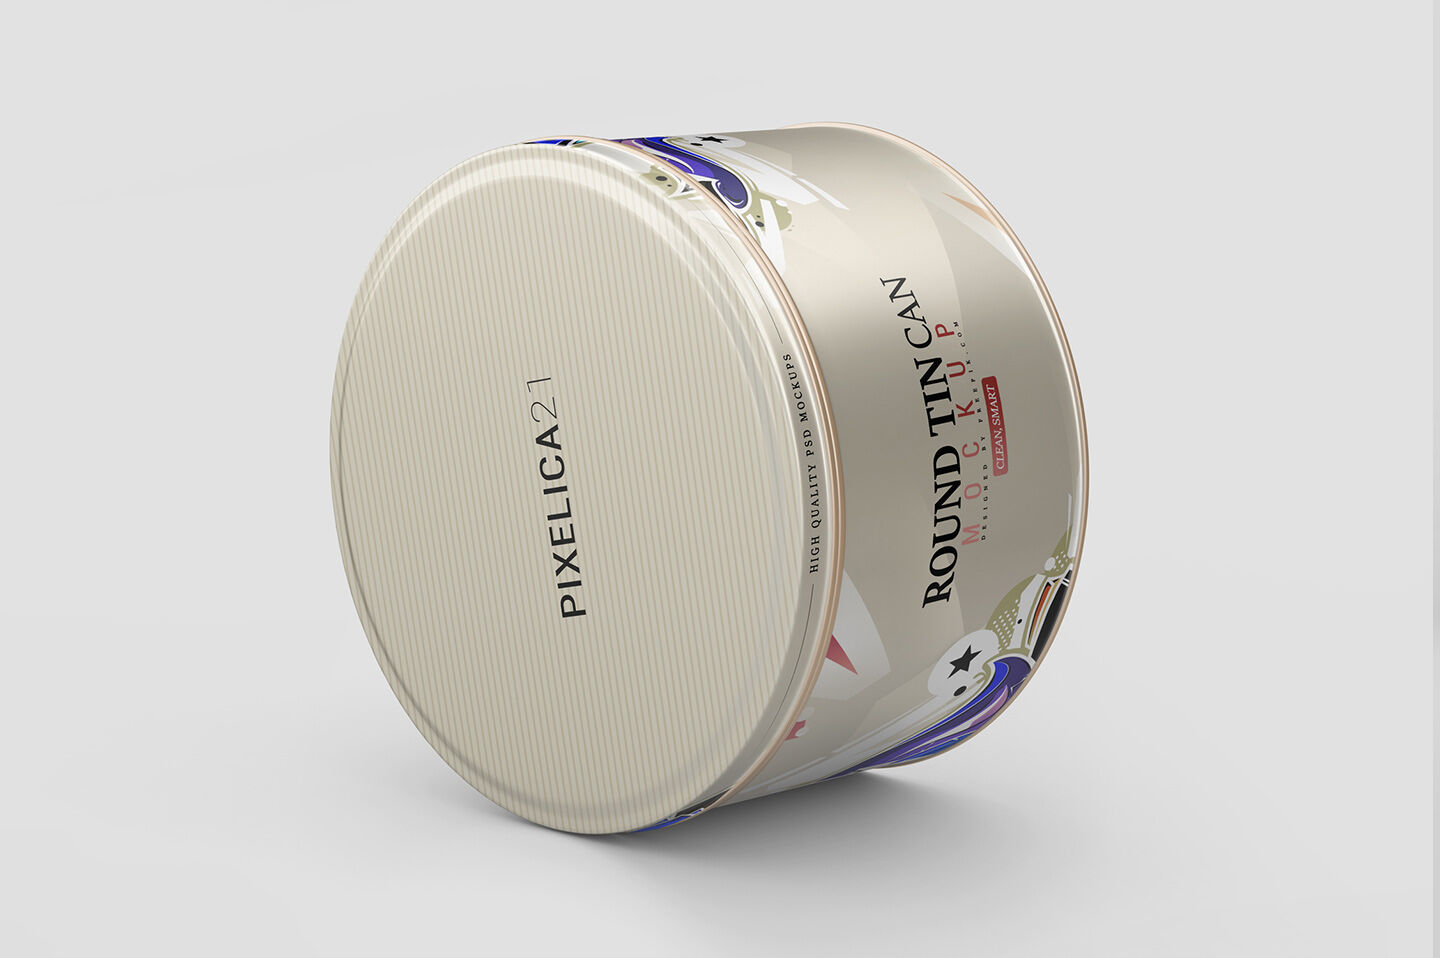 High Round Tin Box Mockup